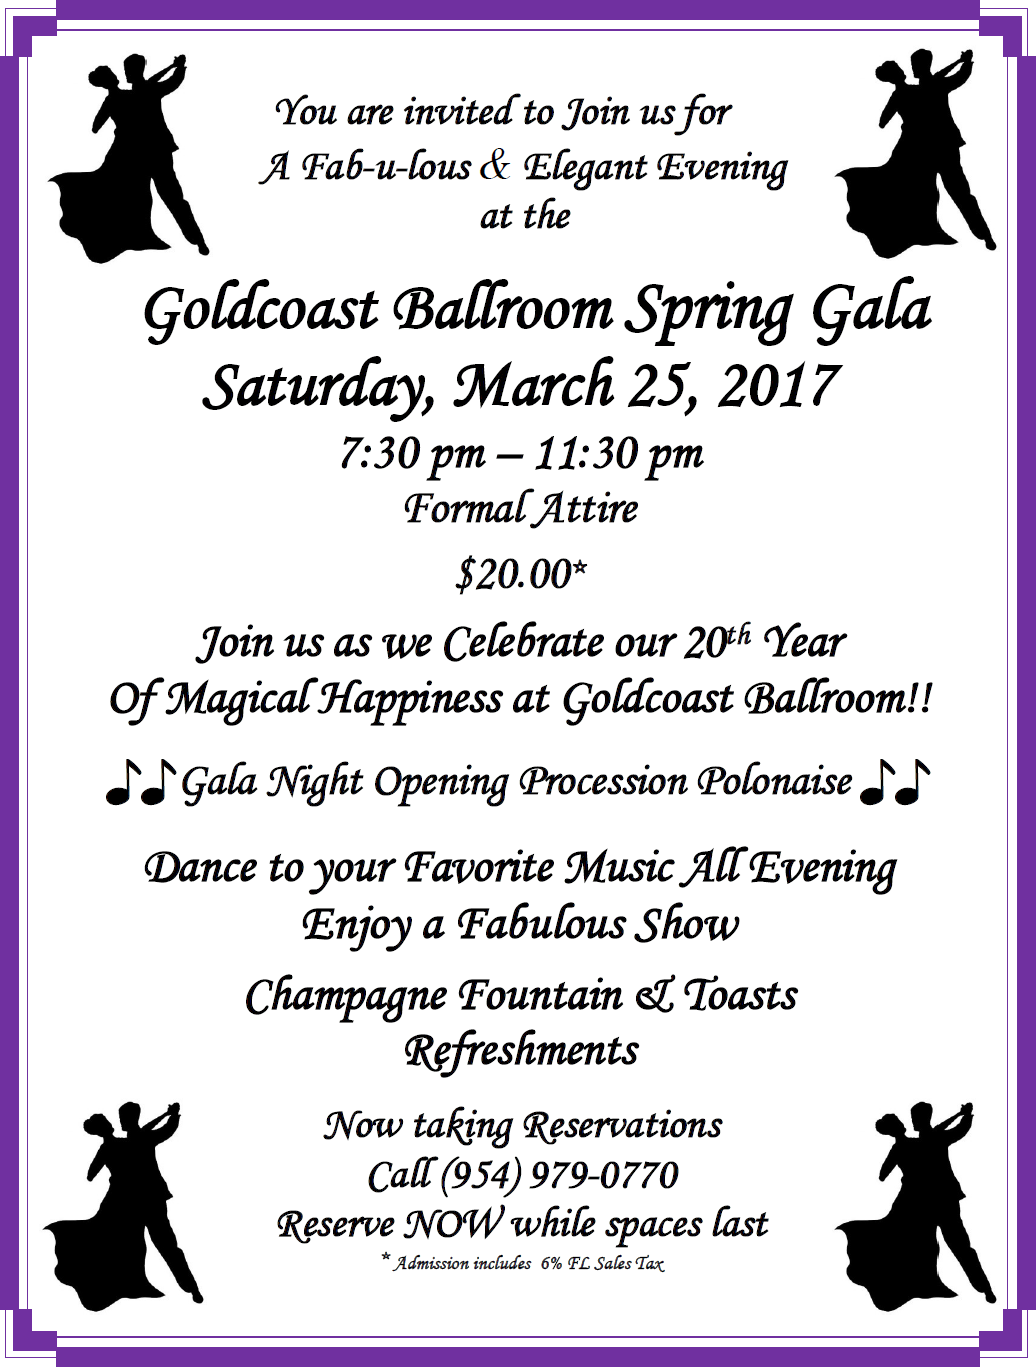 Invitation to Goldcoast Ballroom Spring Gala - March 25, 2017 - Celebrating 20 Years Of Magical Happiness at Goldcoast Ballroom